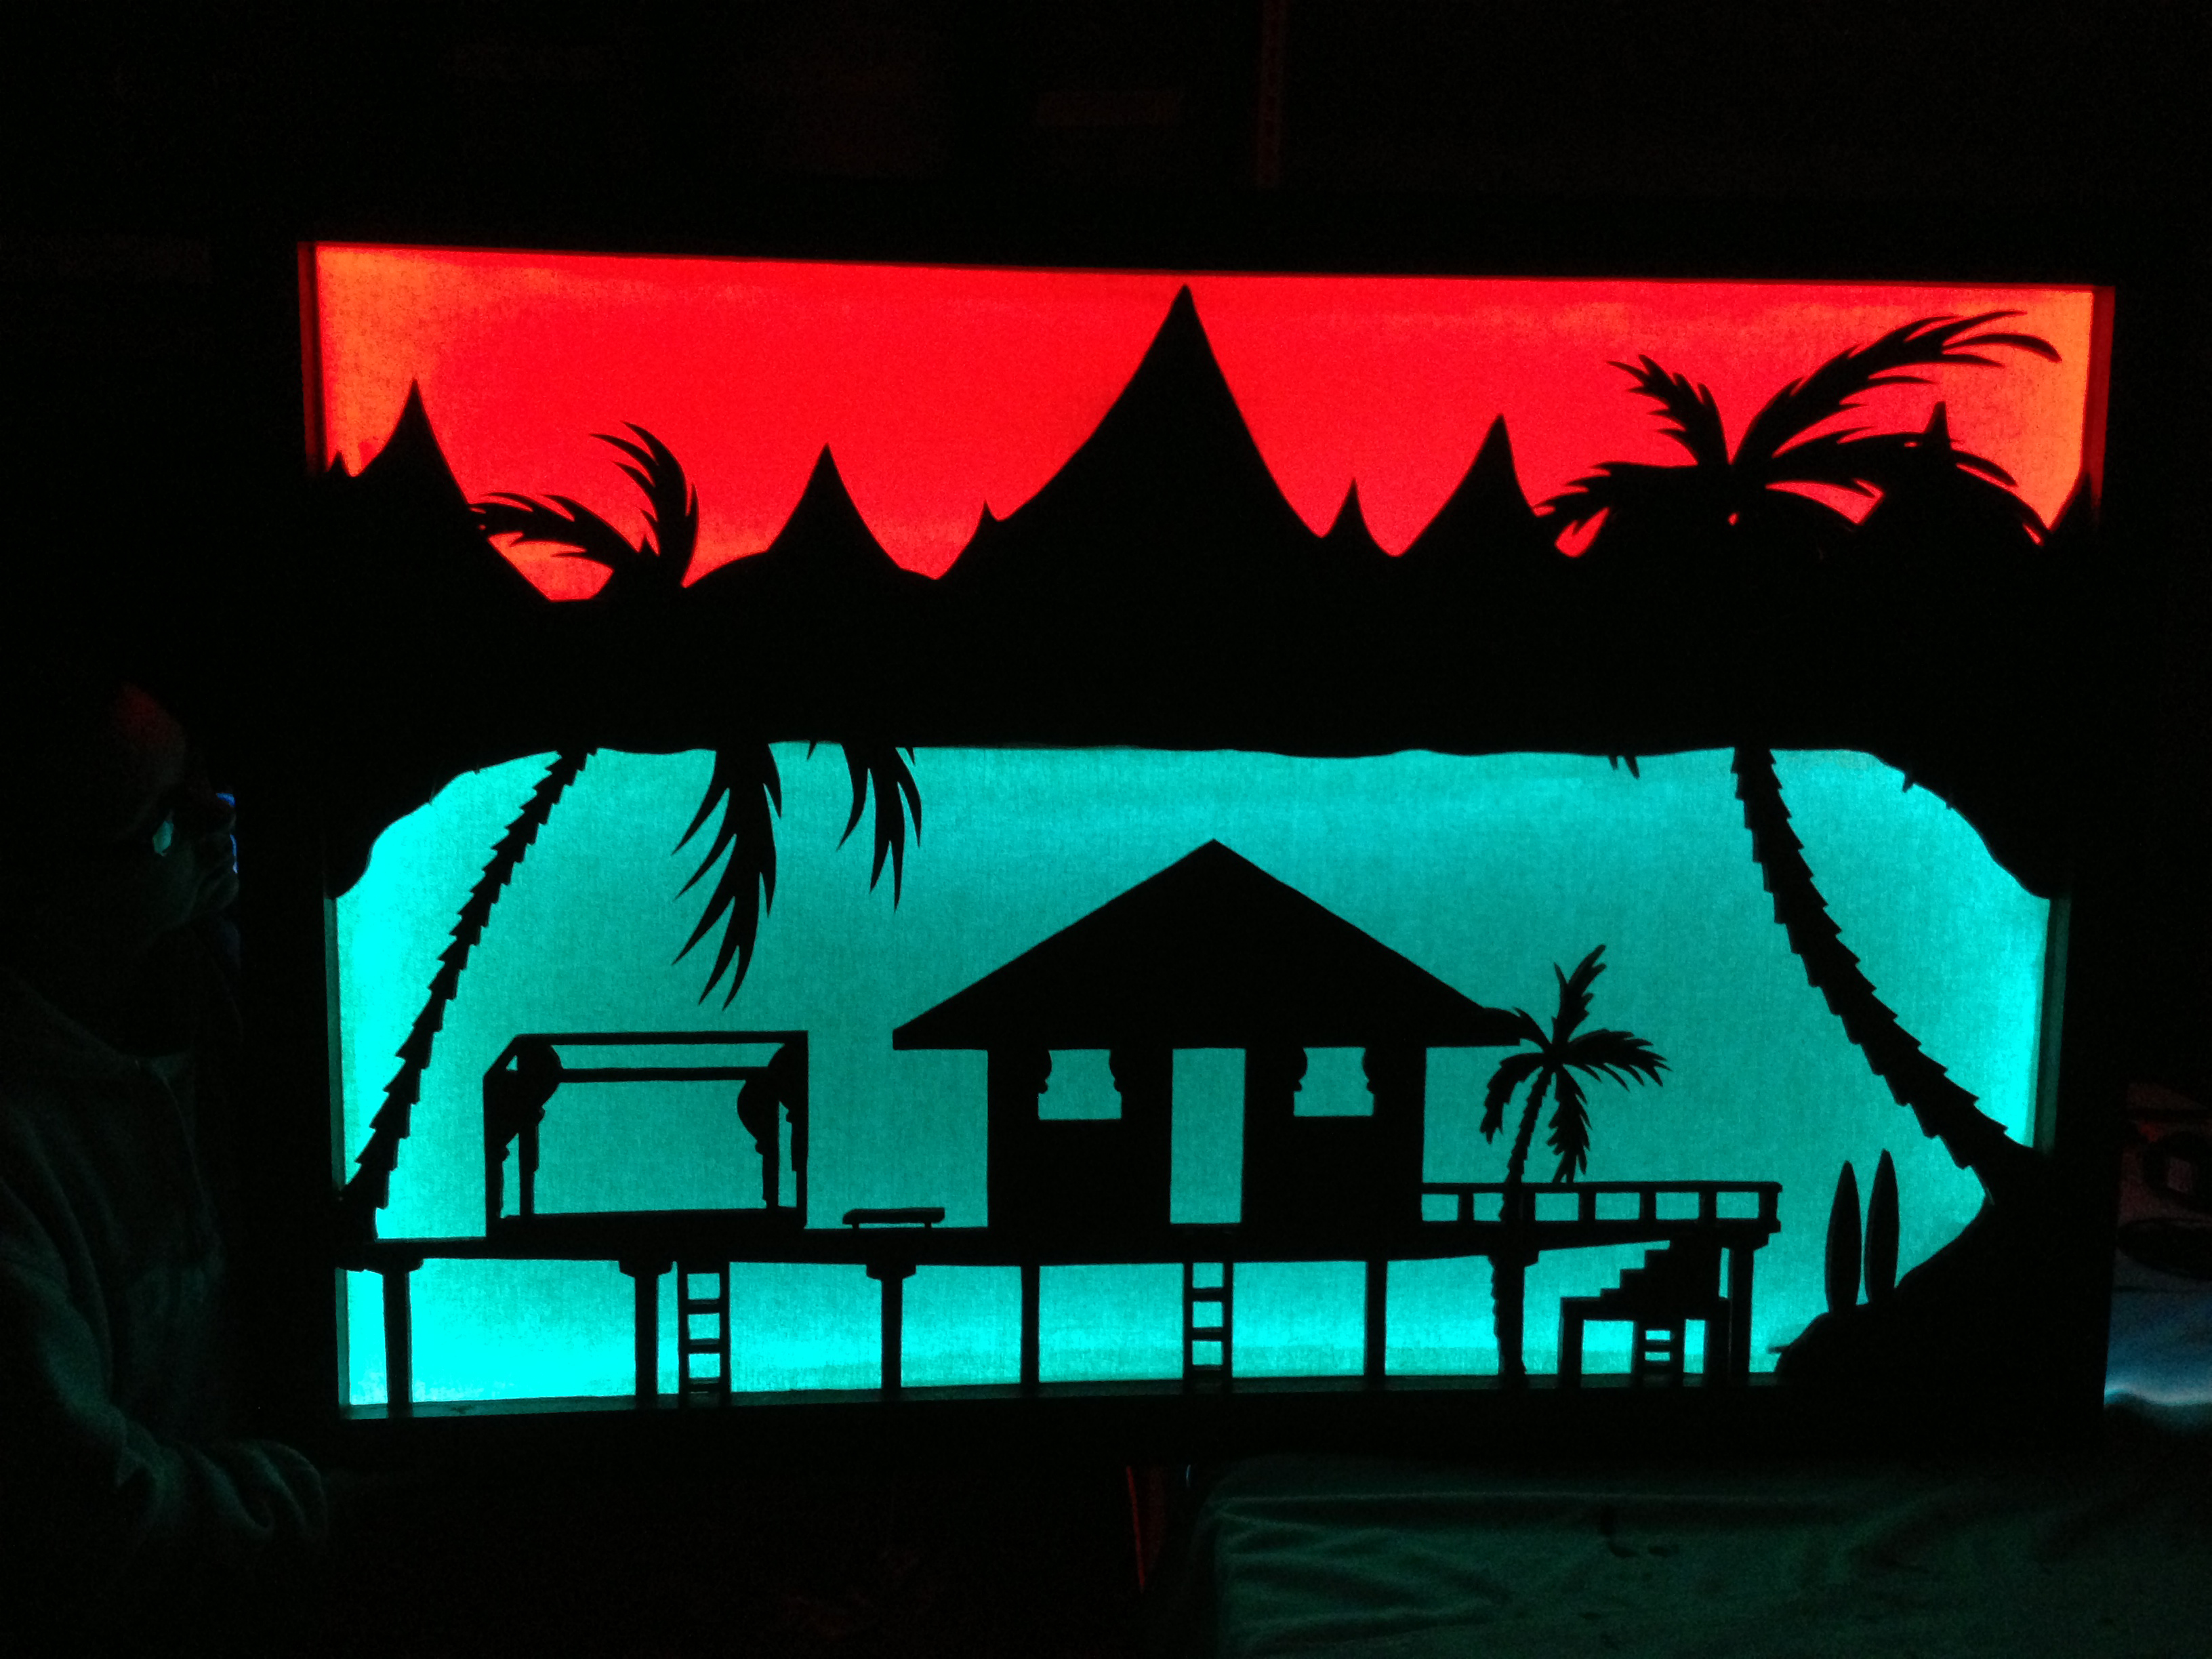 Bungalow silhouette.